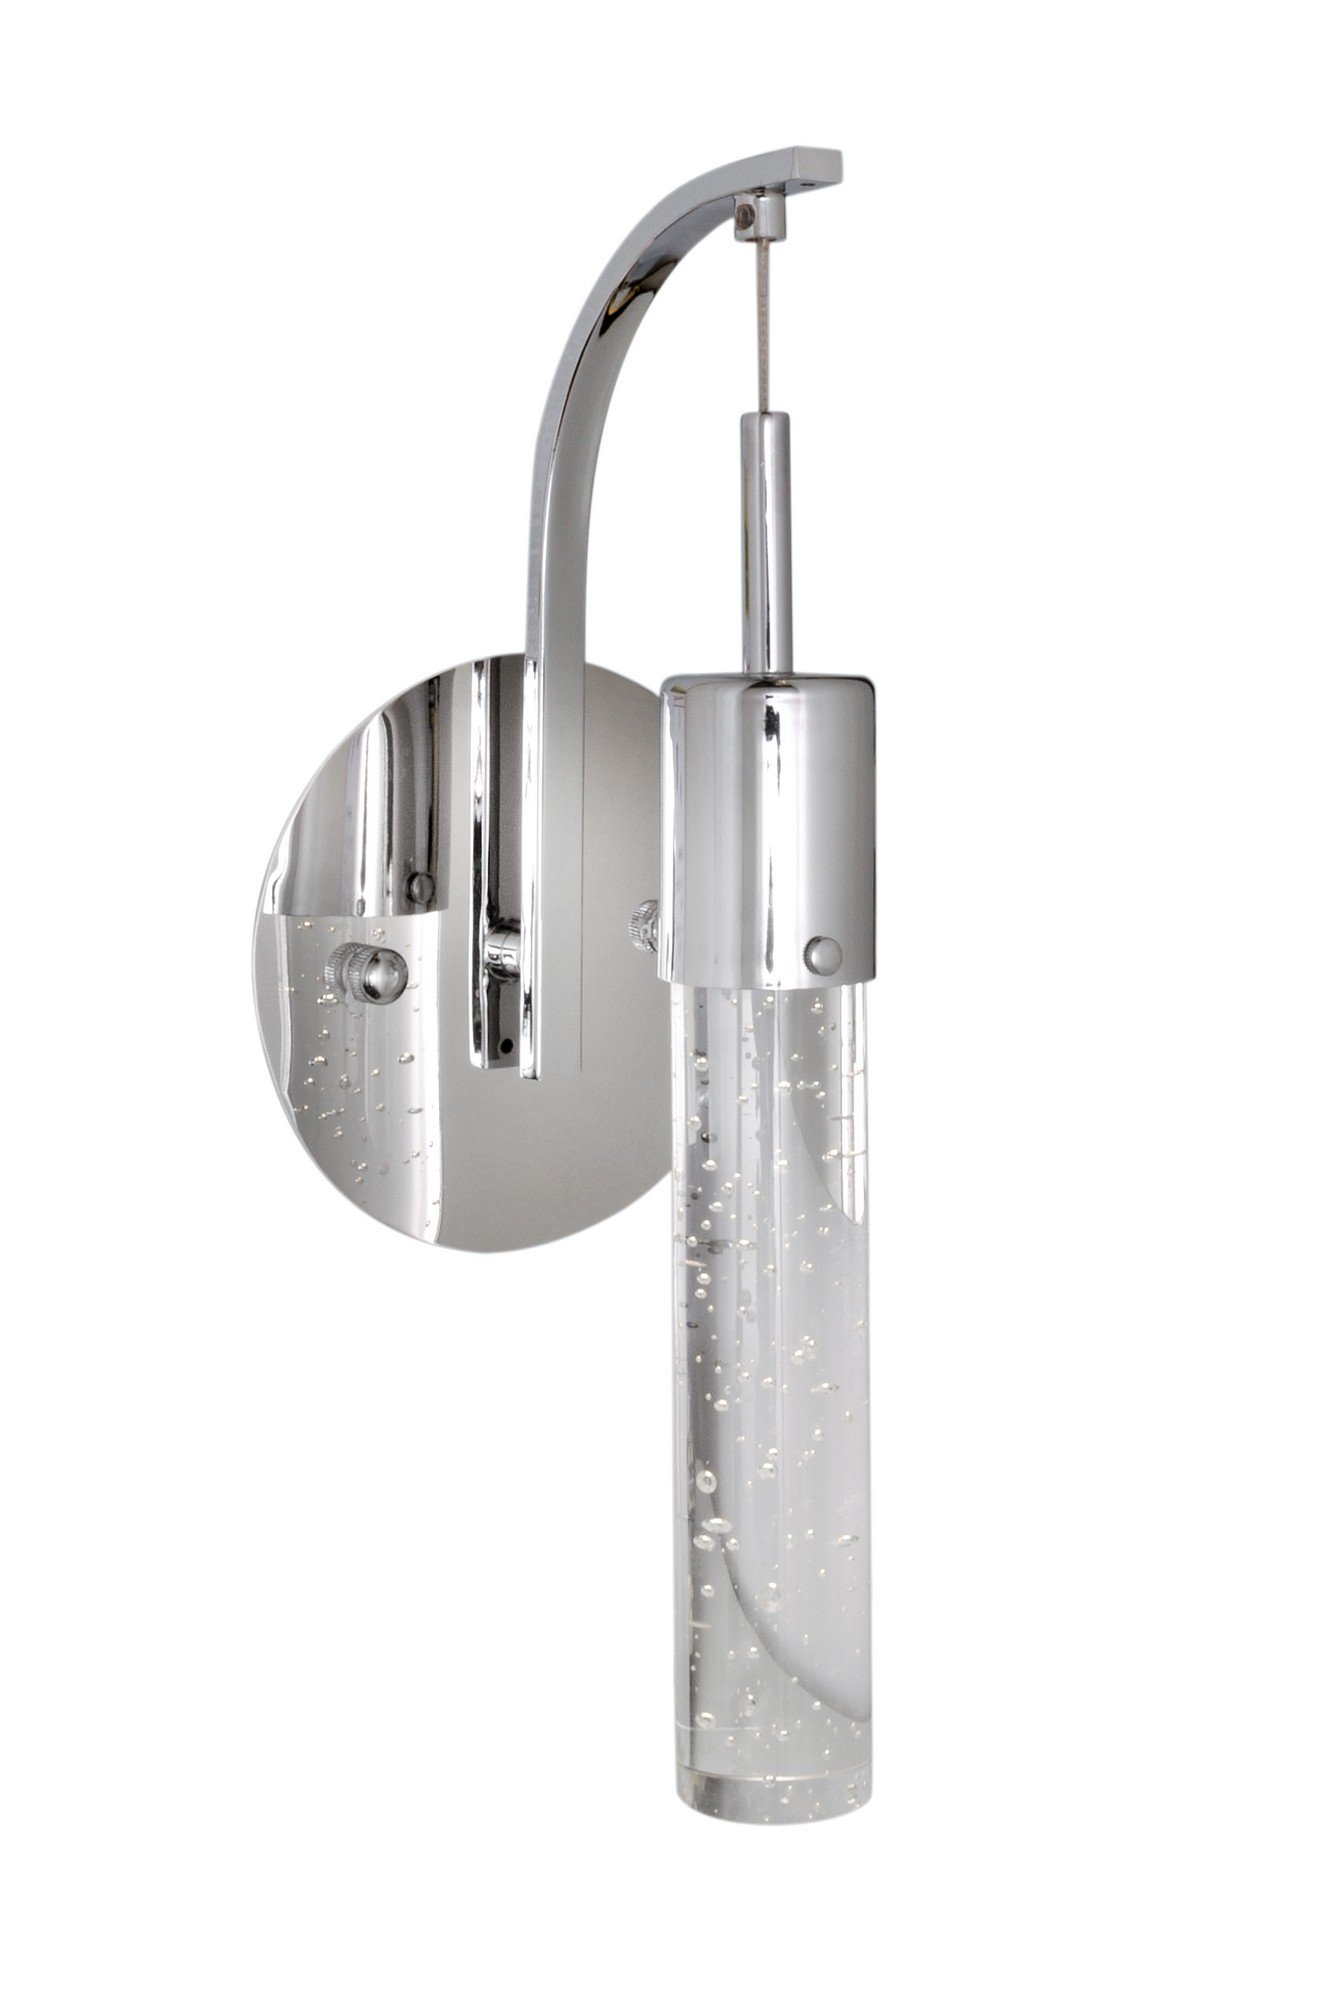 ET2 E22770-91PC Fizz IV 1-Light LED Wall Sconce, Polished Chrome Finish, Bubble Glass, PCB LED Bulb, 20W Max., Dry Safety Rated, 2900K Color Temp., Standard Dimmable, Stainless Steel Shade Material, 3500 Rated Lumens